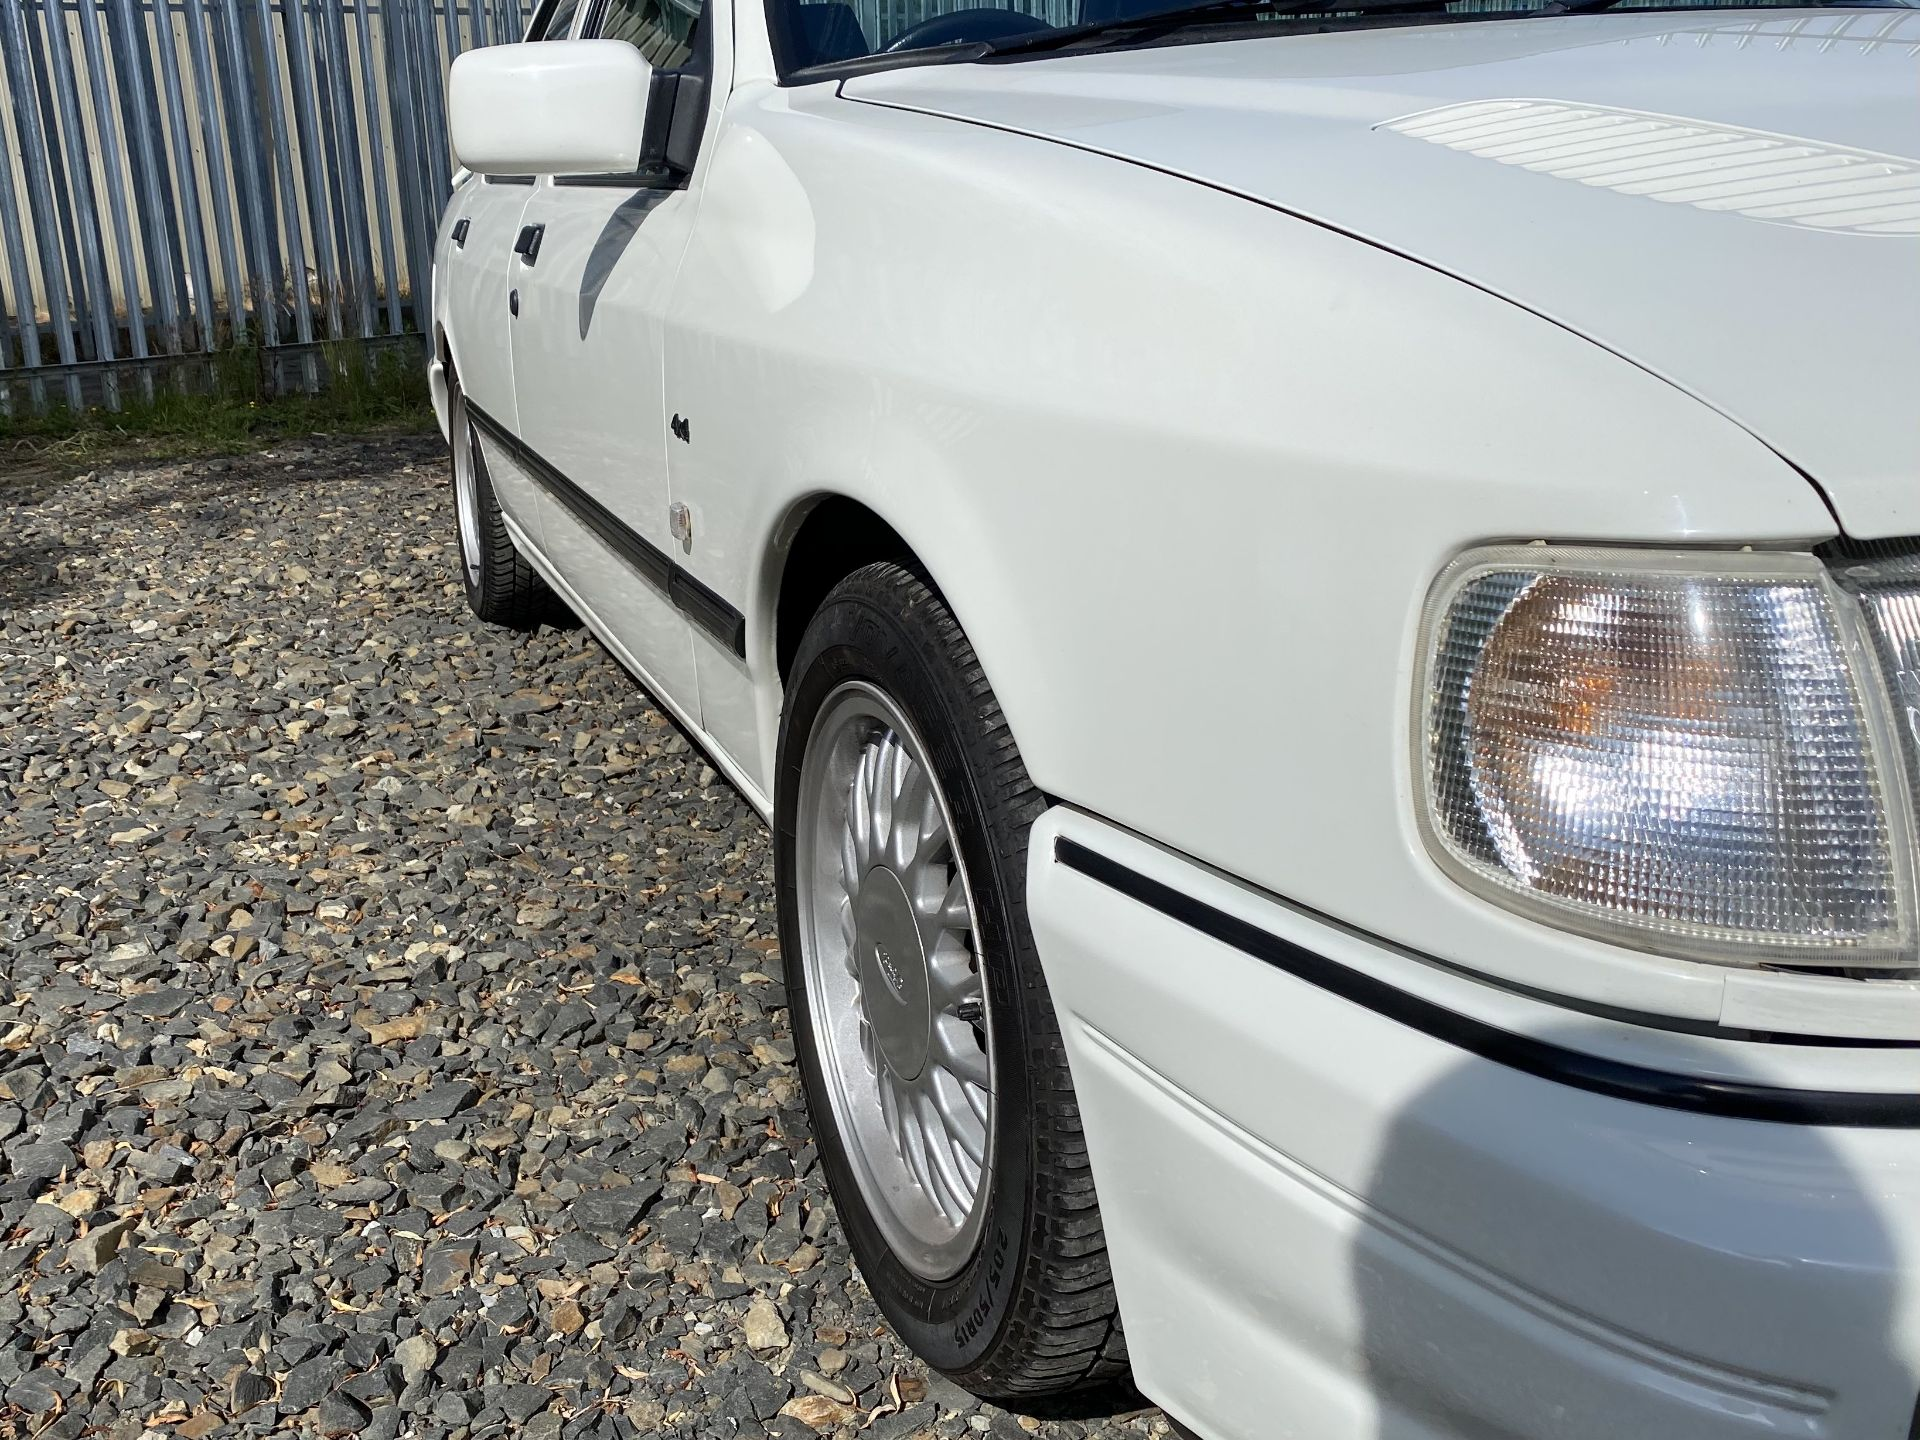 Ford Sierra Sapphire Cosworth 4x4 - Image 18 of 55